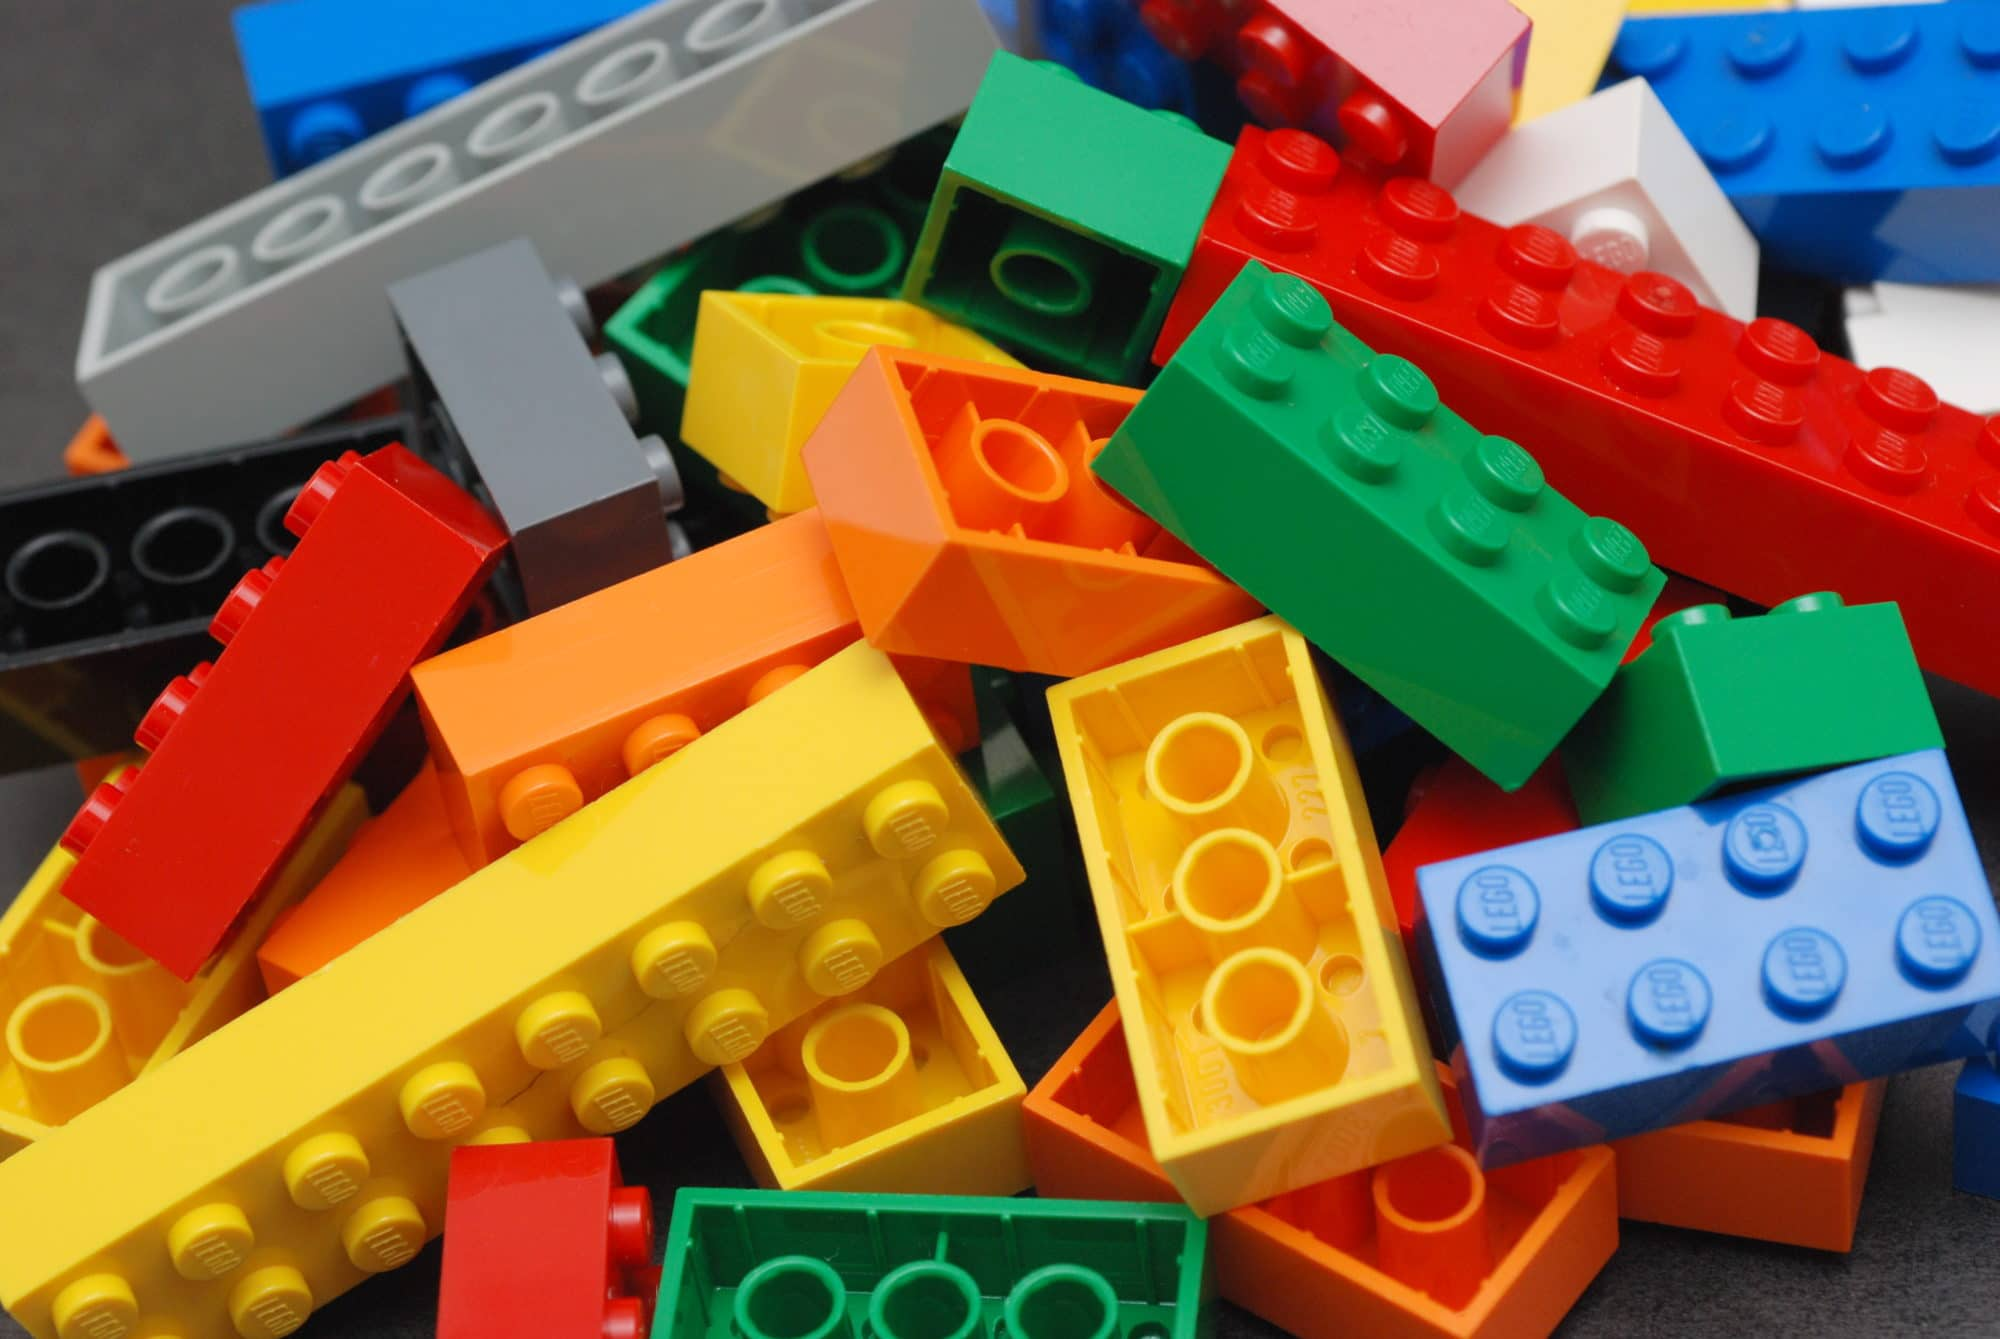 inventor sorts 2 million lego bricks with ai nvidia blog